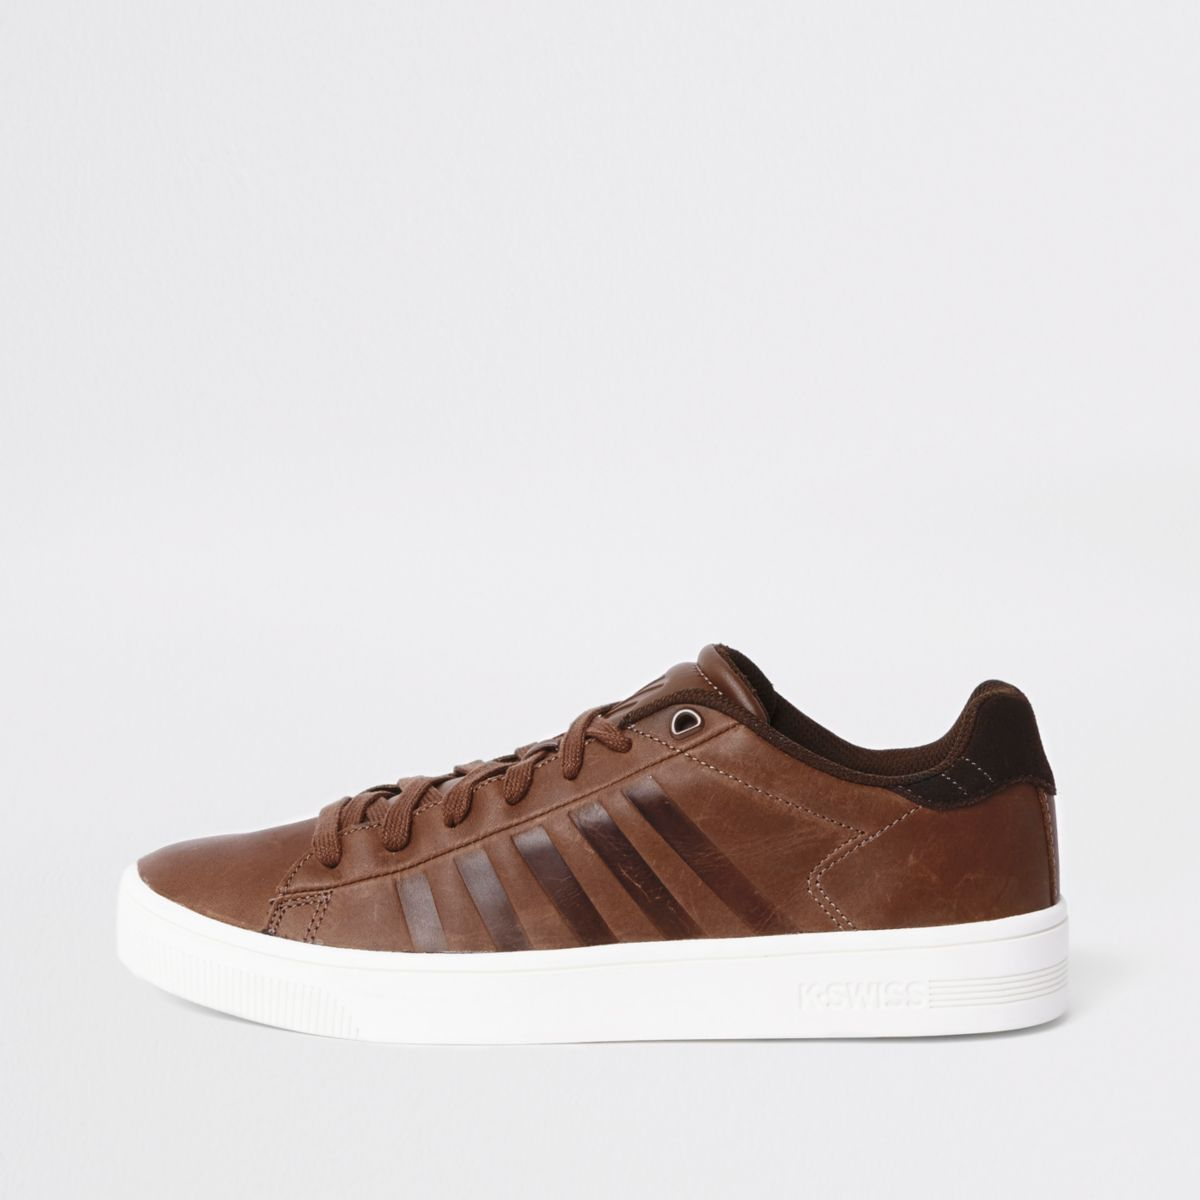 K-Swiss brown low top cupsole trainers